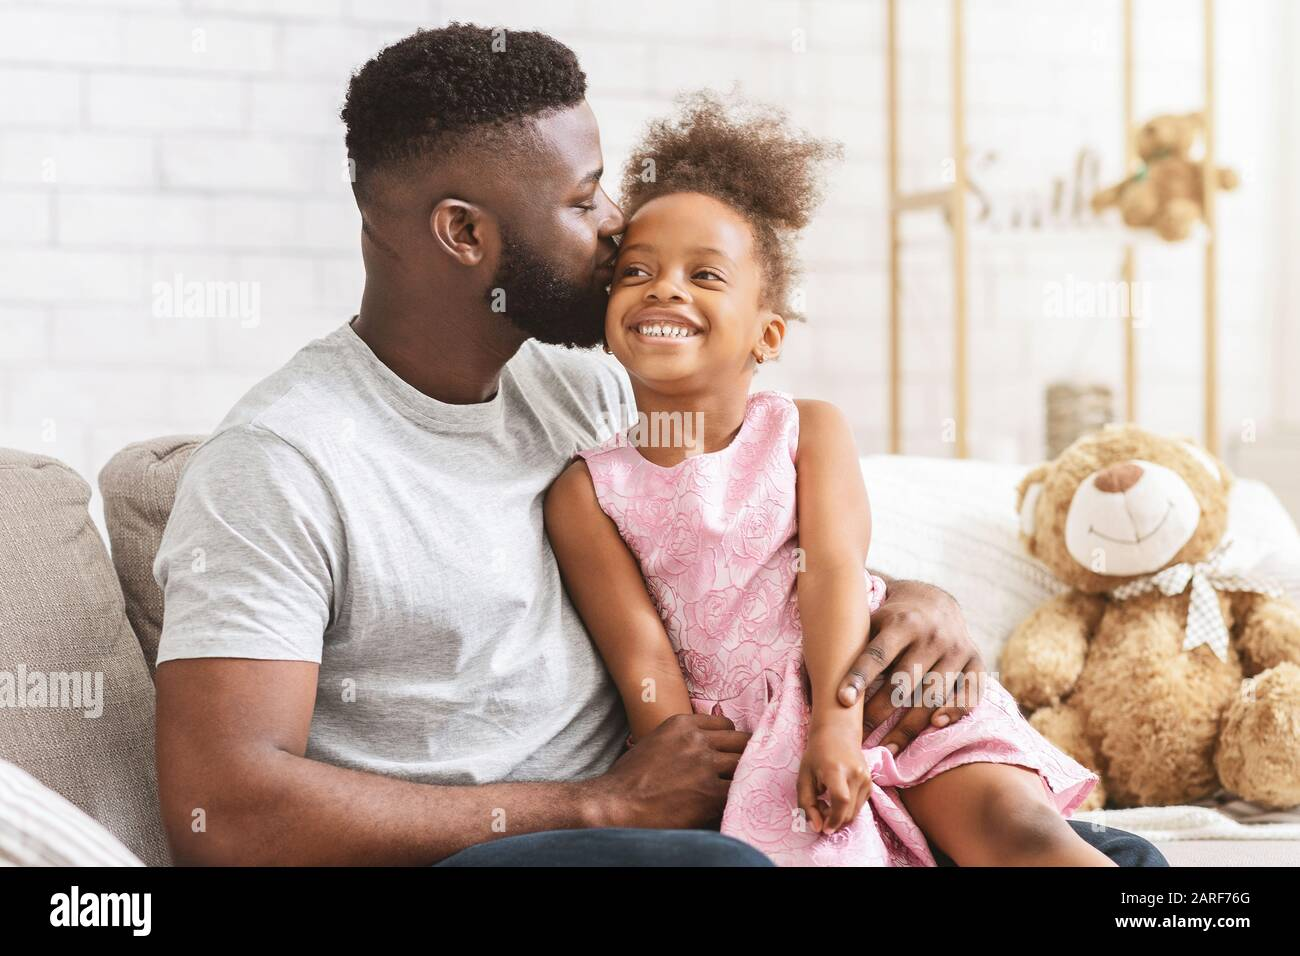 Loving Black Dad Kissing His Happy Little Daughter Stock Photo Alamy